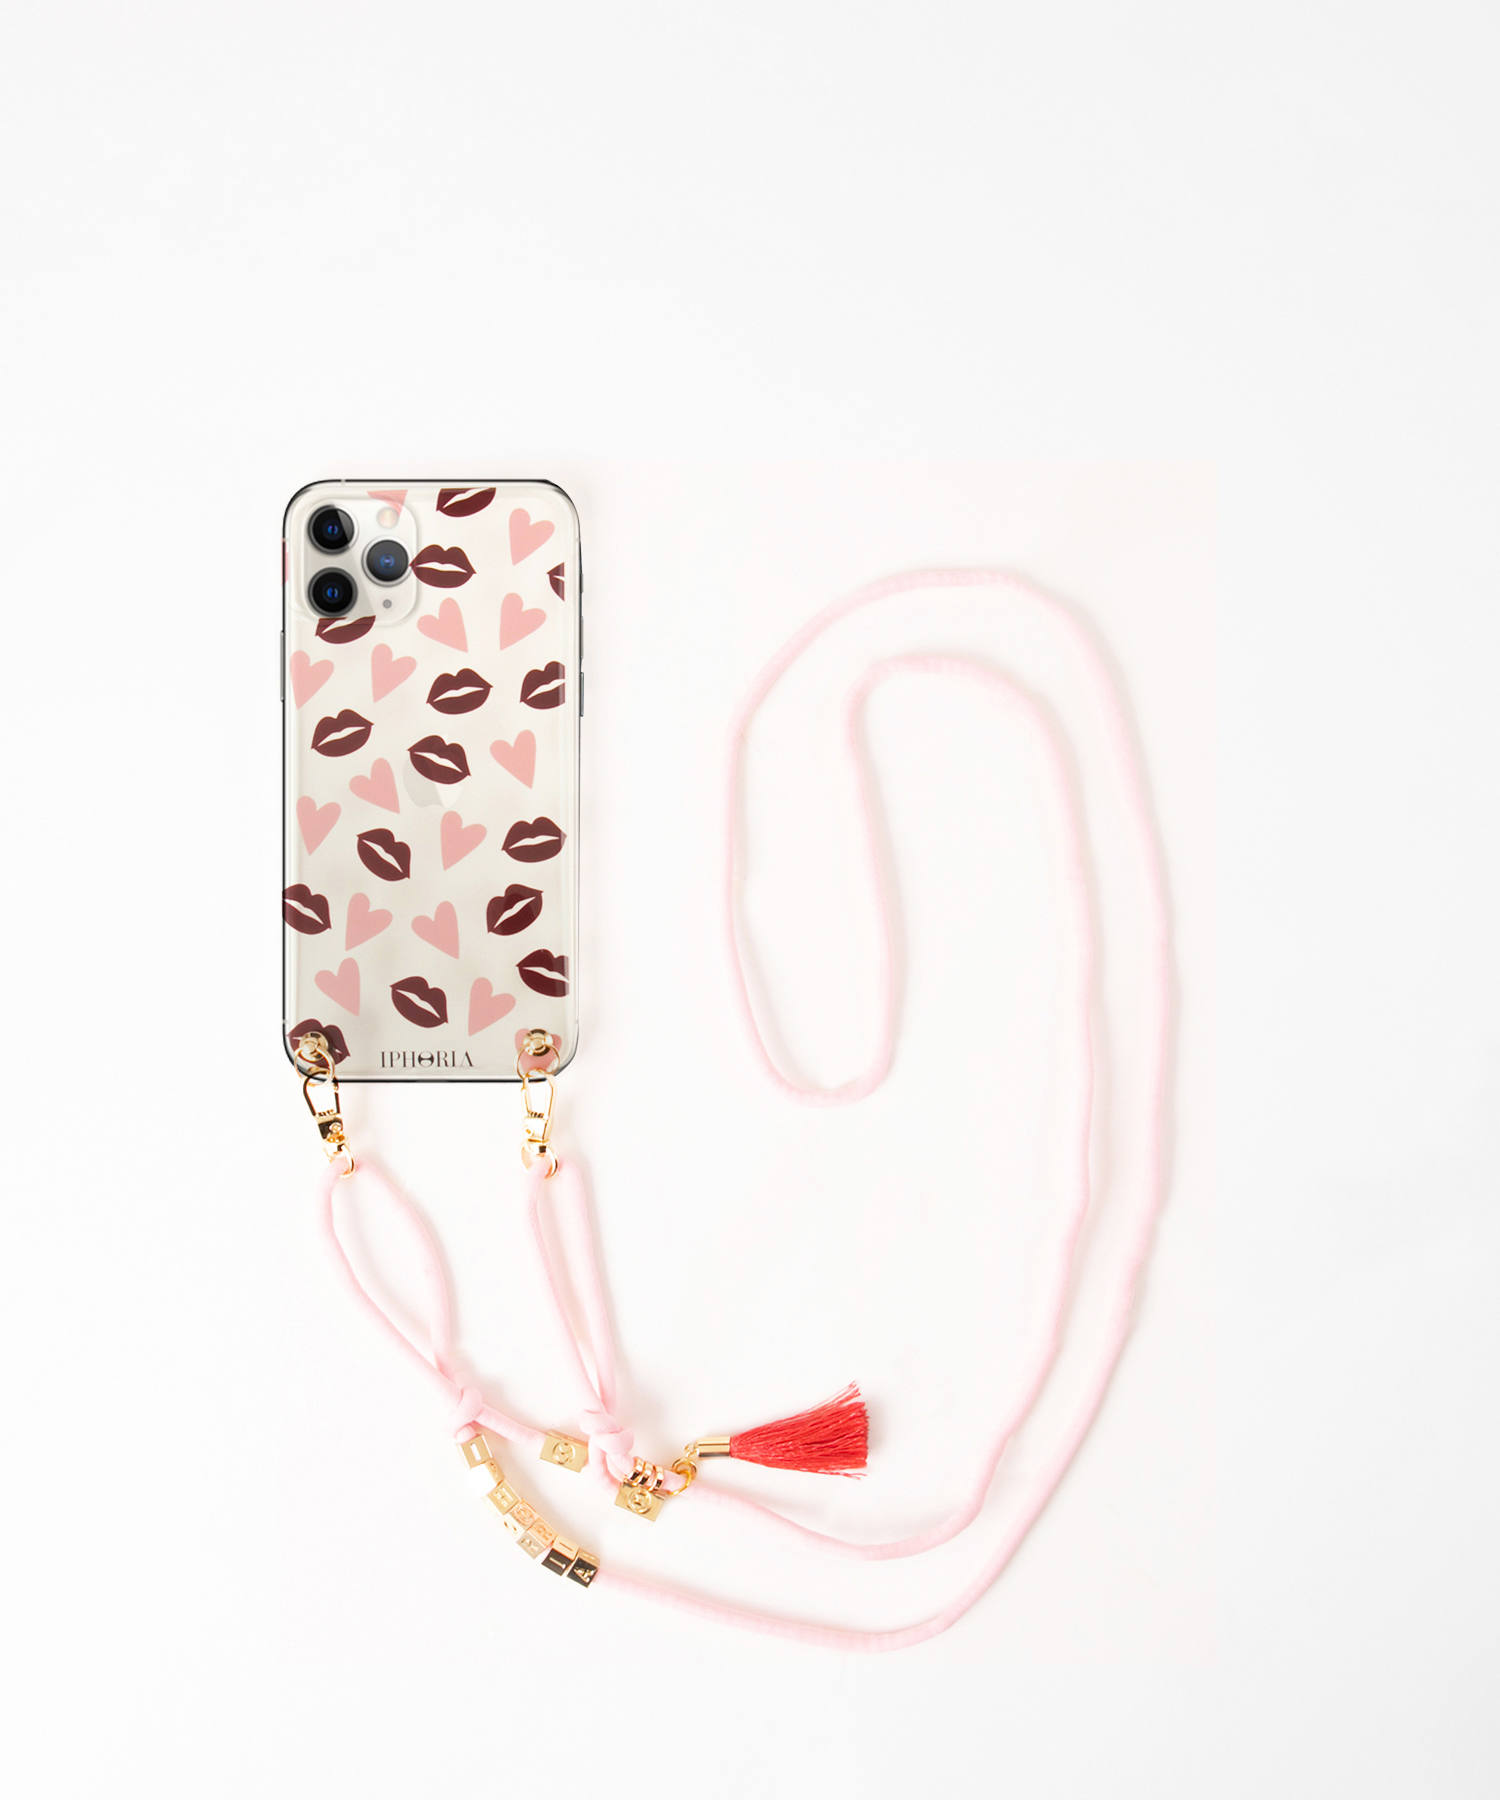 Necklace Case for Apple iPhone 11Pro Max - Lips & Hearts